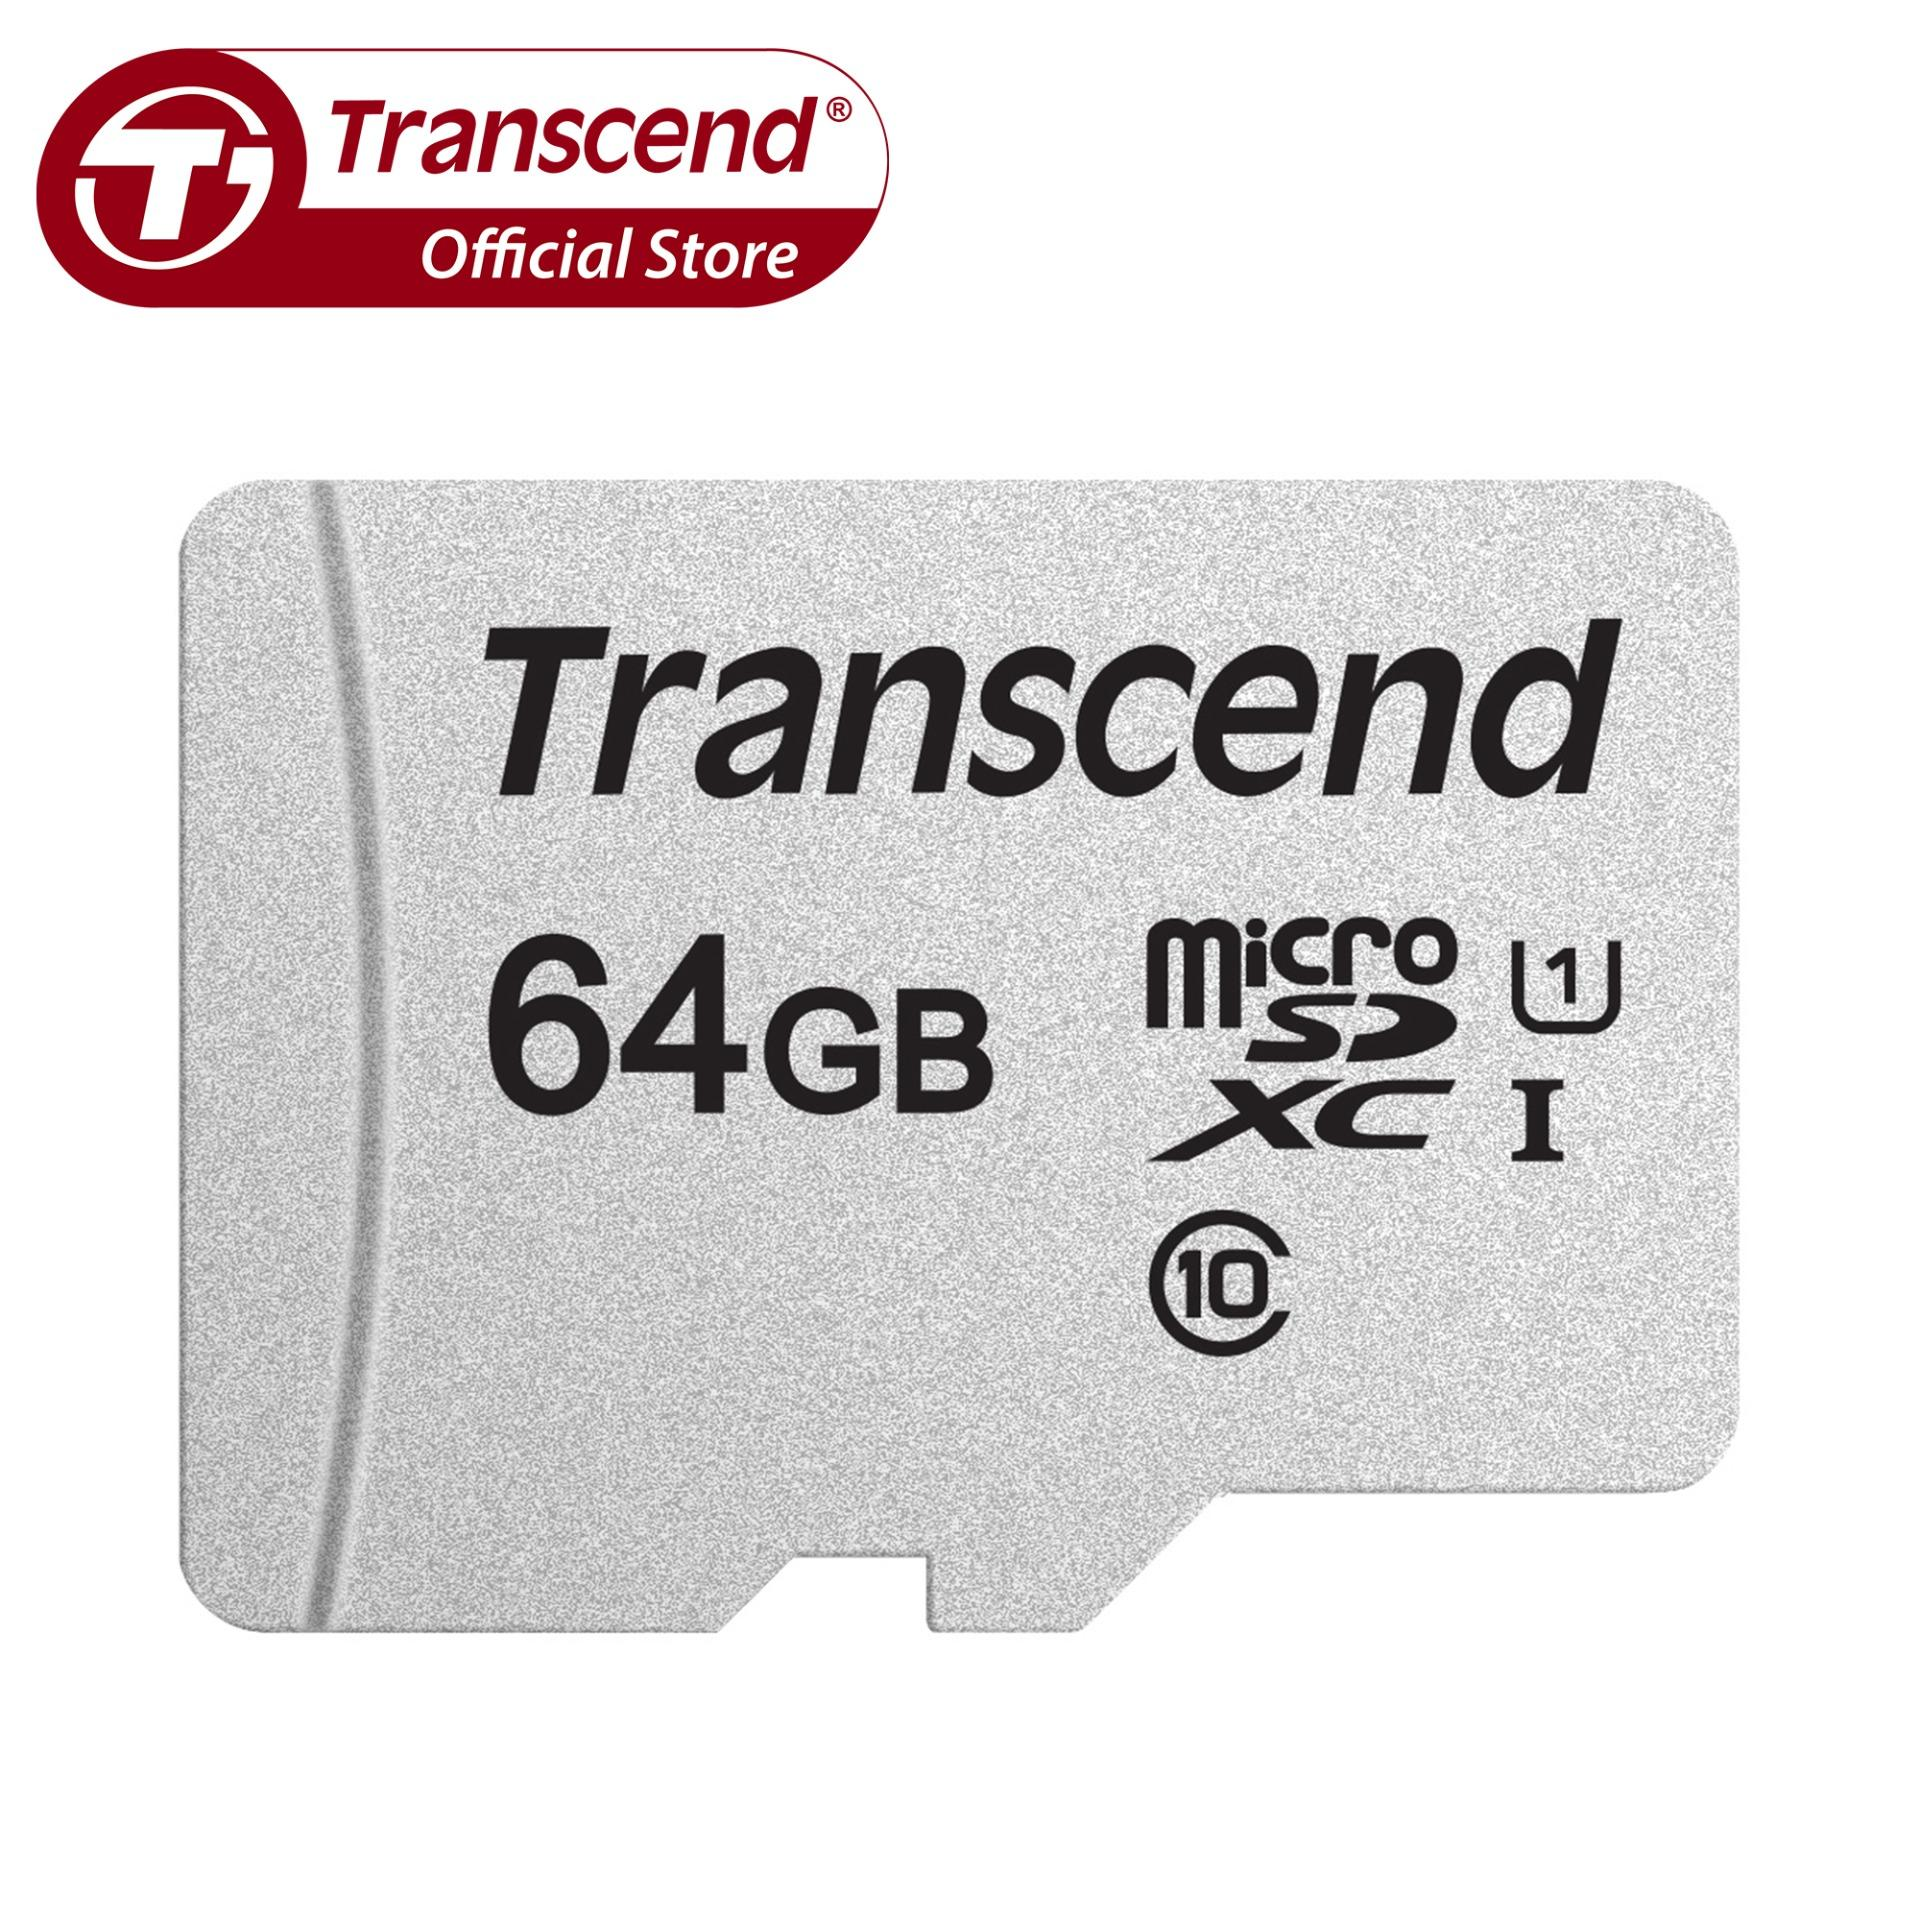 Transcend Rdf8 Usb 30 Card Reader Black Latest Memory Cards Products Enjoy Huge Discounts 300s Capacities 16gb 32gb 64gb 128gb Class 10 Uhs